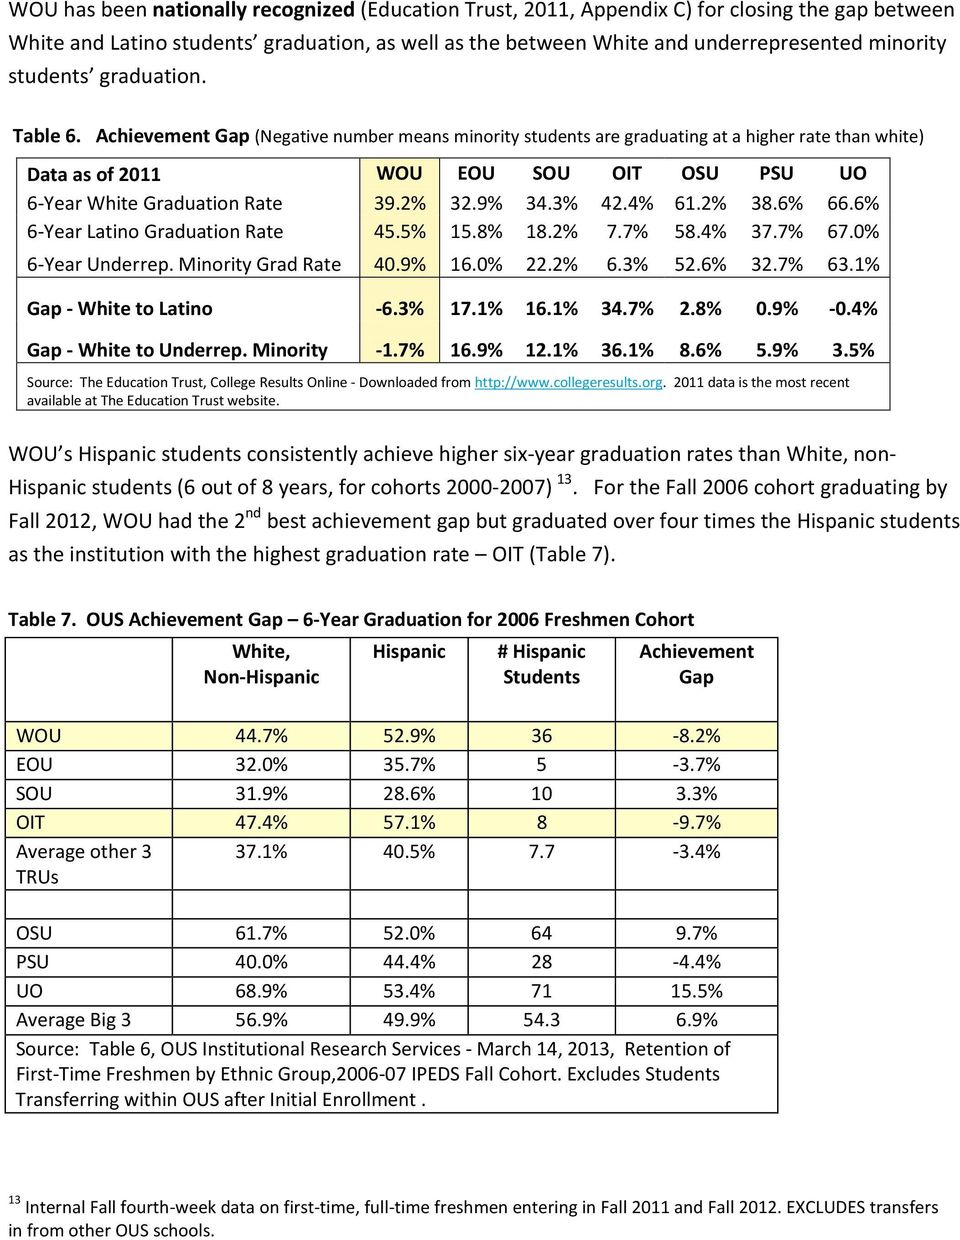 Achievement Gap (Negative number means minority students are graduating at a higher rate than white) Data as of 2011 WOU EOU SOU OIT OSU PSU UO 6-Year White Graduation Rate 39.2% 32.9% 34.3% 42.4% 61.